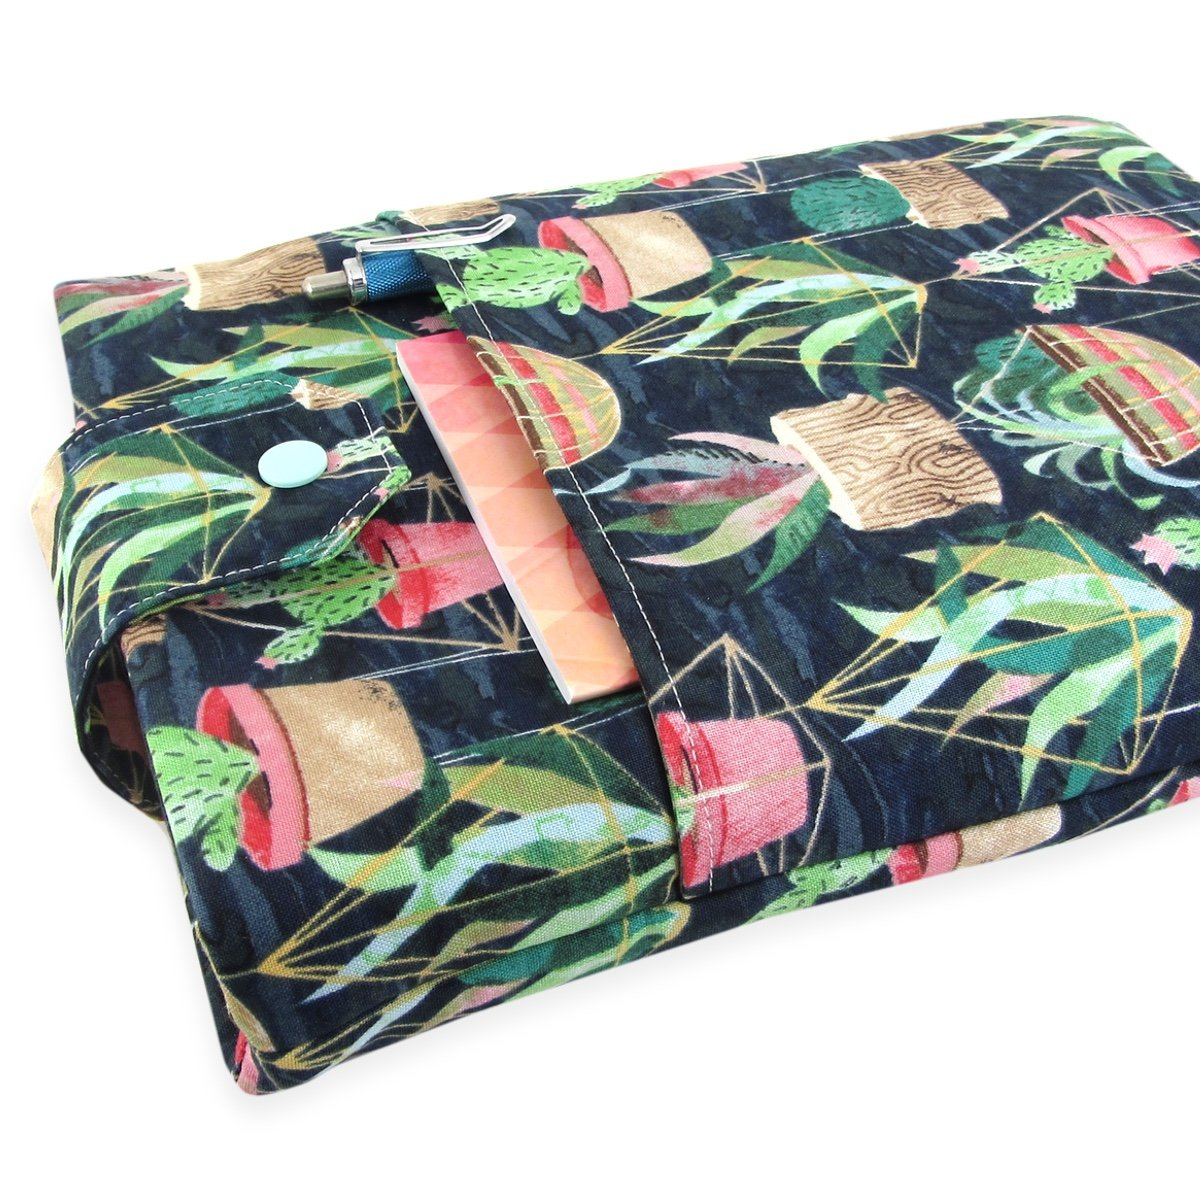 Handmade Cactus Succulent Fabric Book Sleeve - Padded - Perfect For Hardbacks Or Large Paperbacks by Five Sprouts Stitching